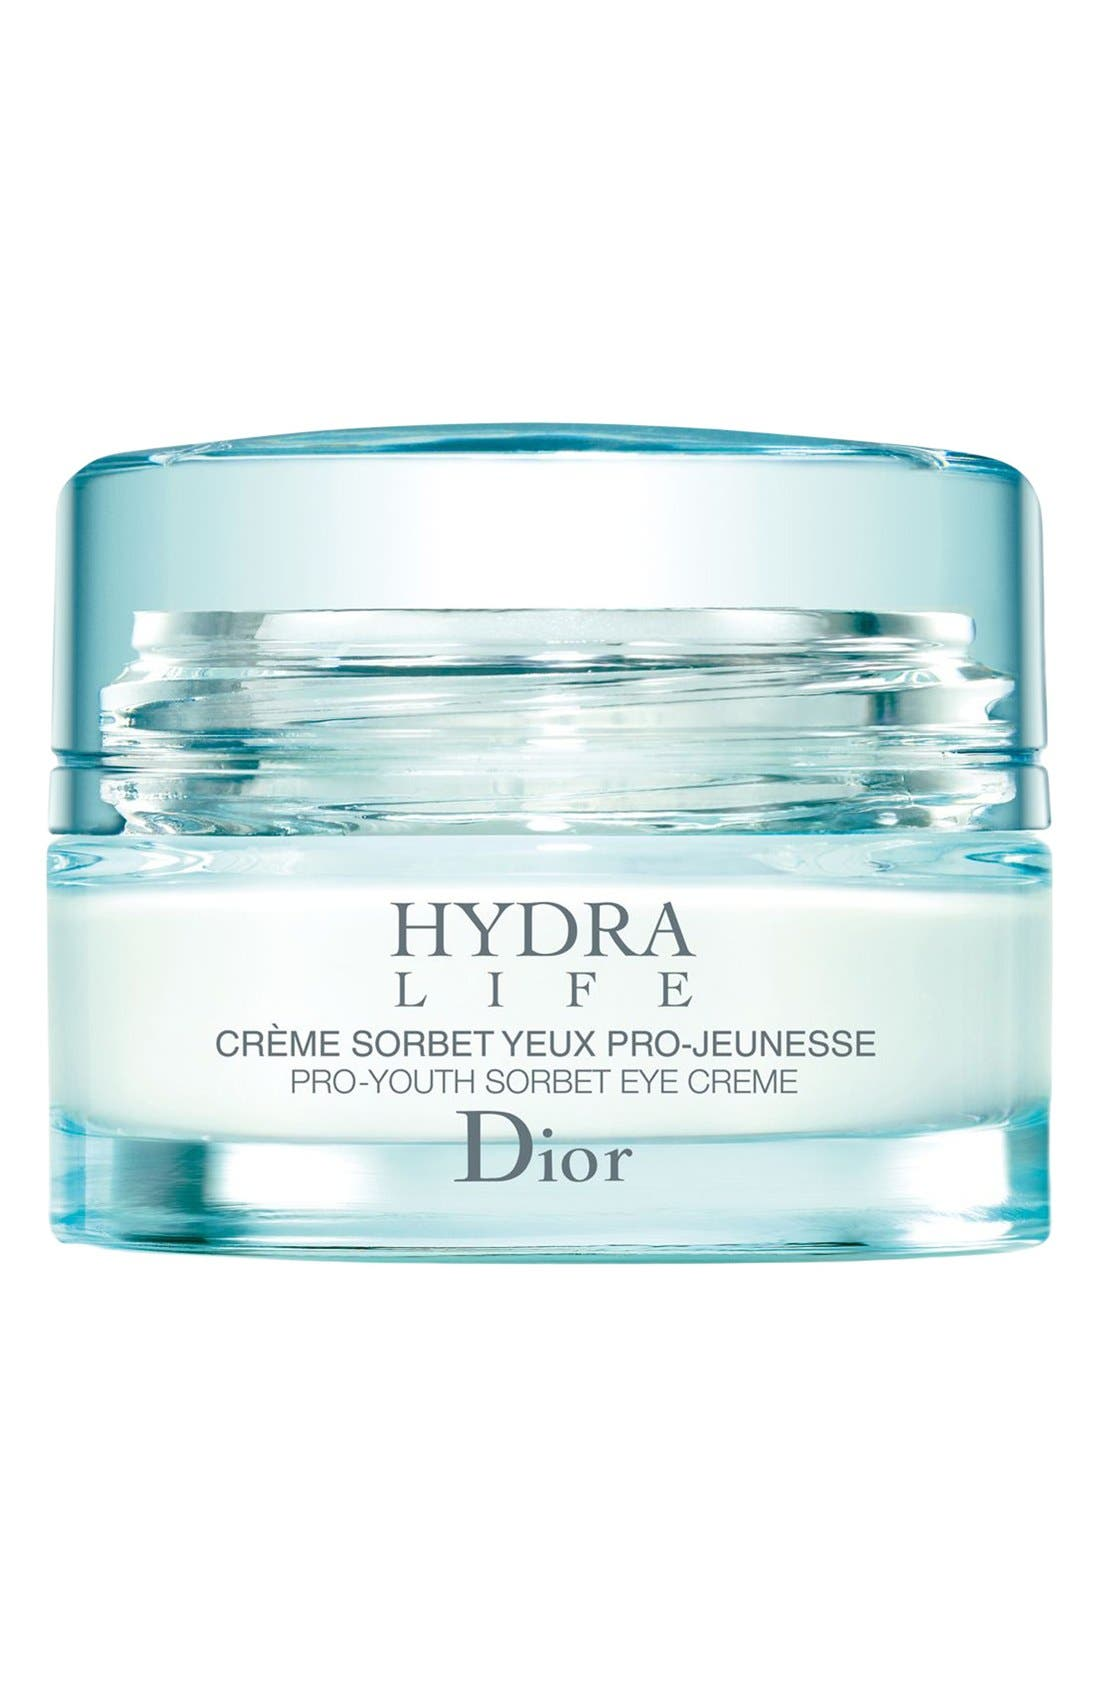 Dior 'Hydra Life' Pro-Youth Sorbet Eye Creme